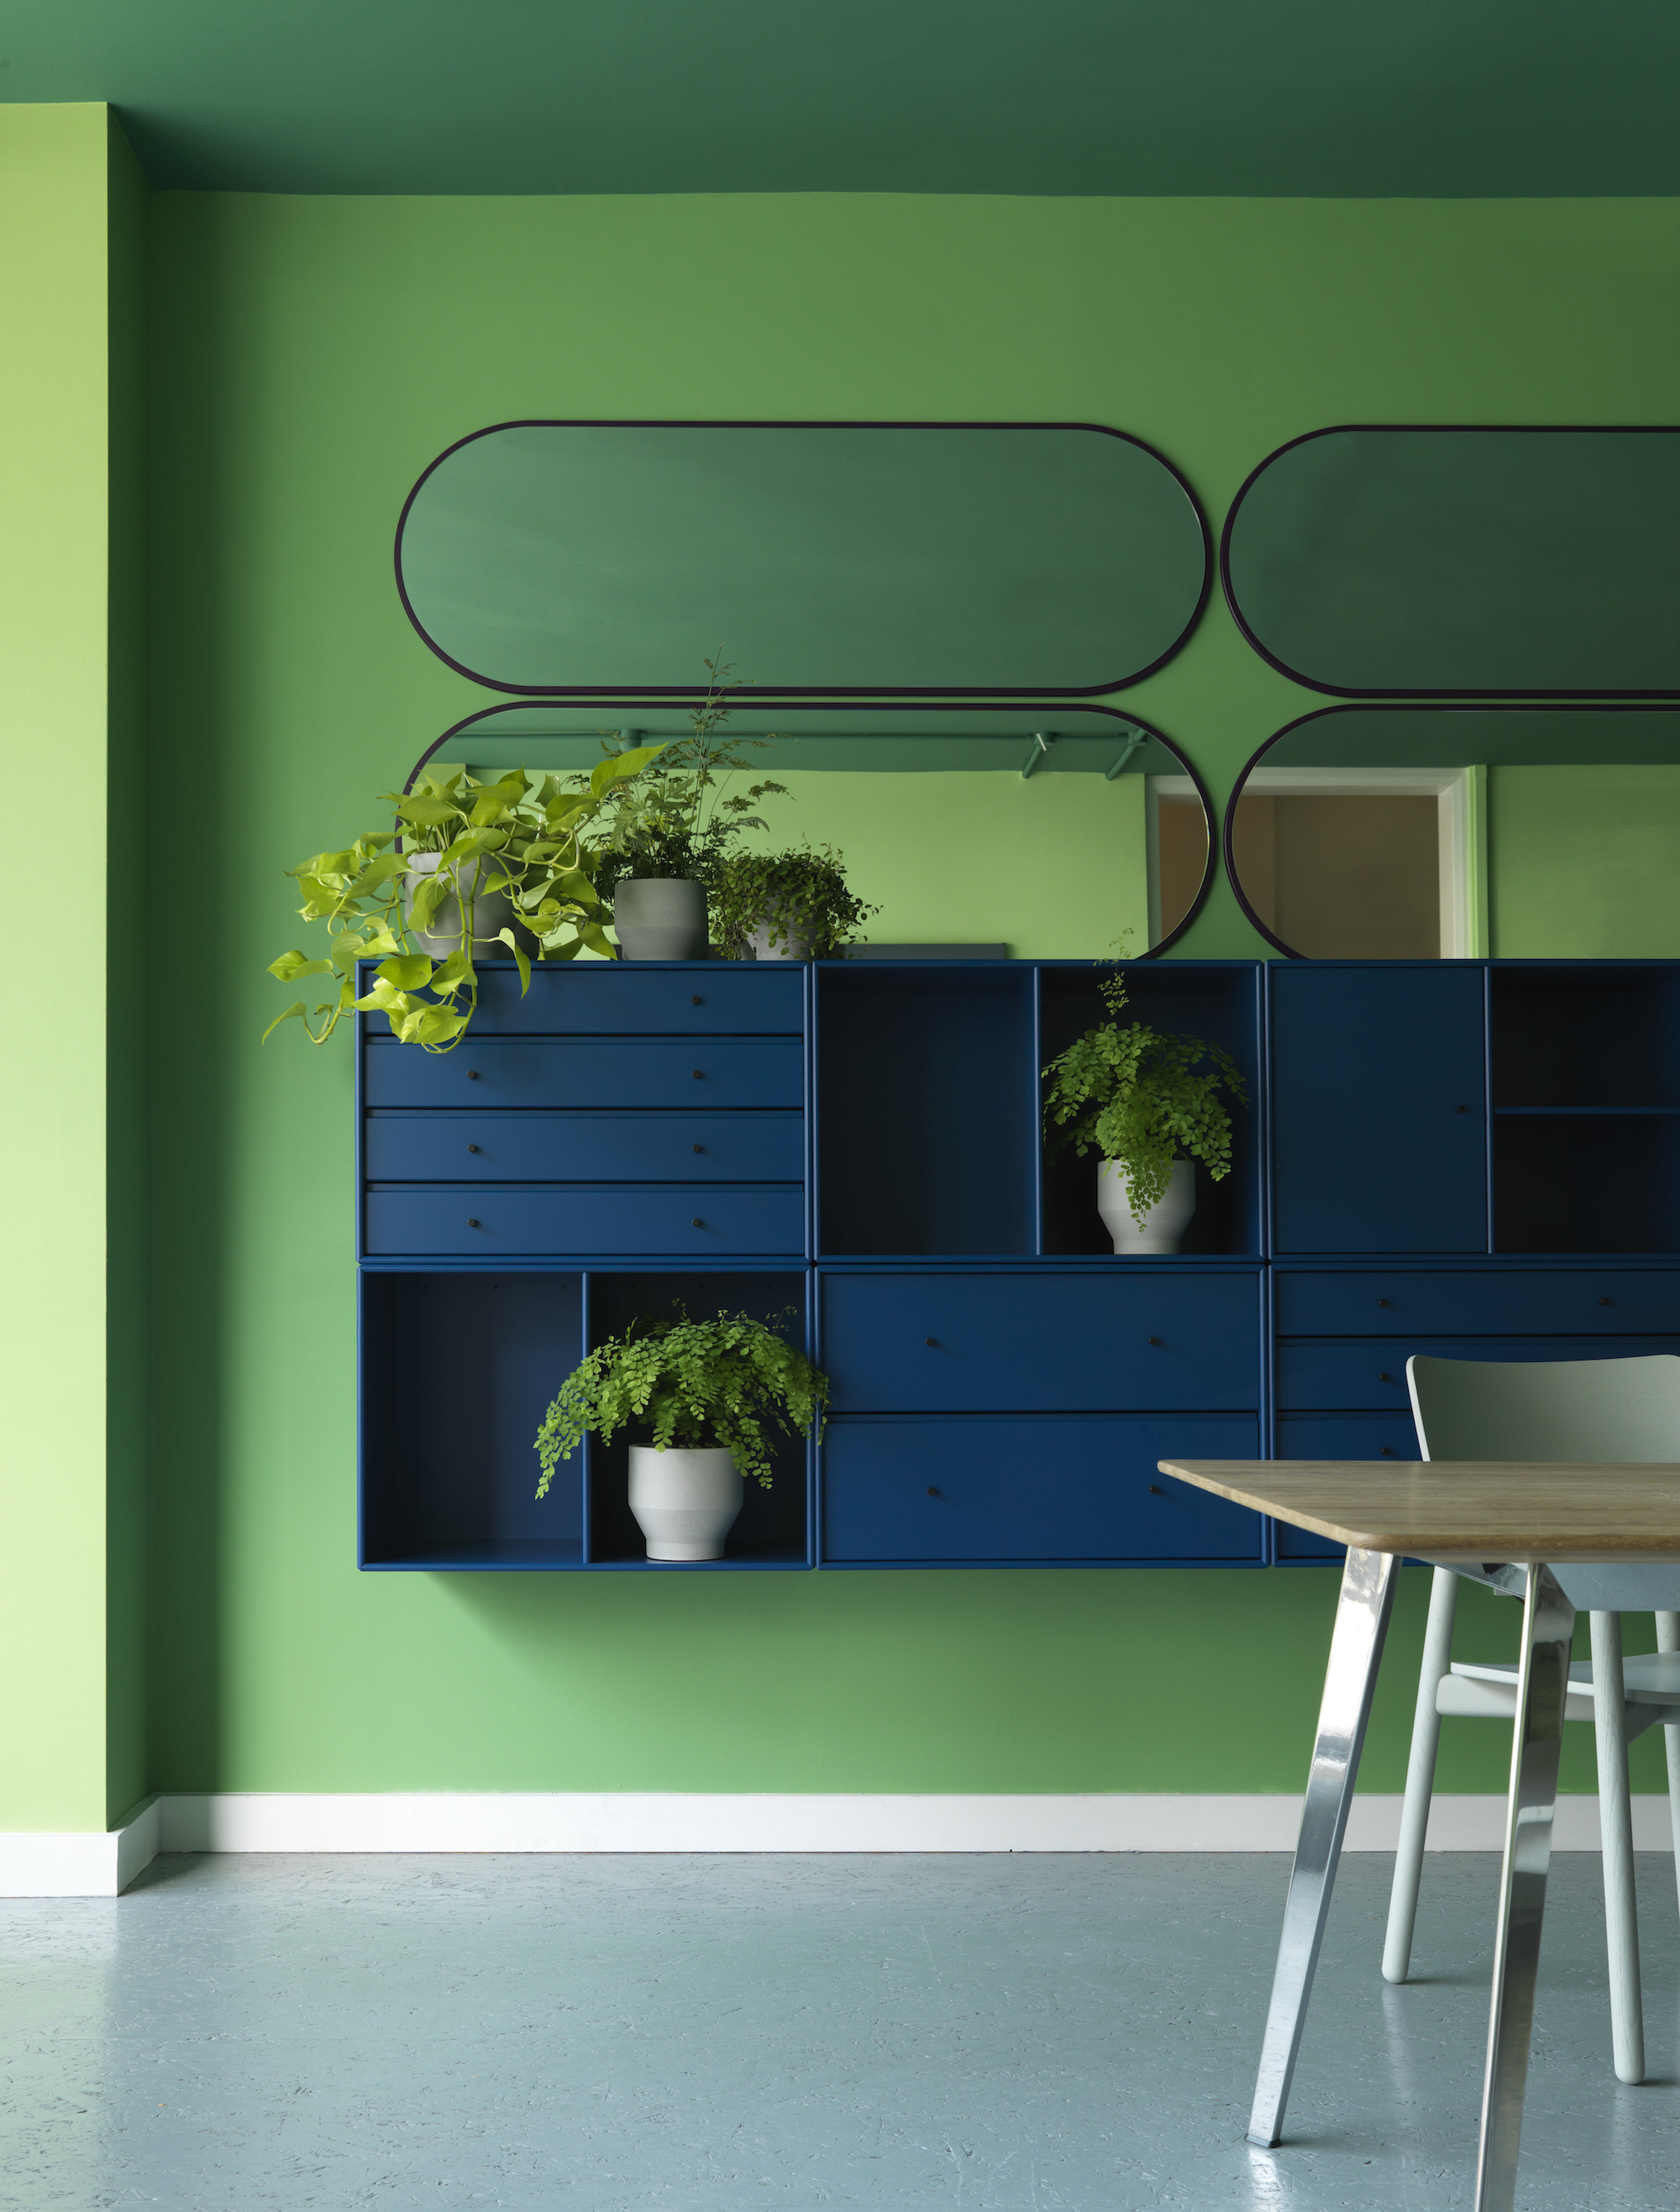 - Architect Helena Laursen, recipient of the Frame Award Milan, designed the two floors assigned to Montana, in their signature bold, captivating colour palettes.